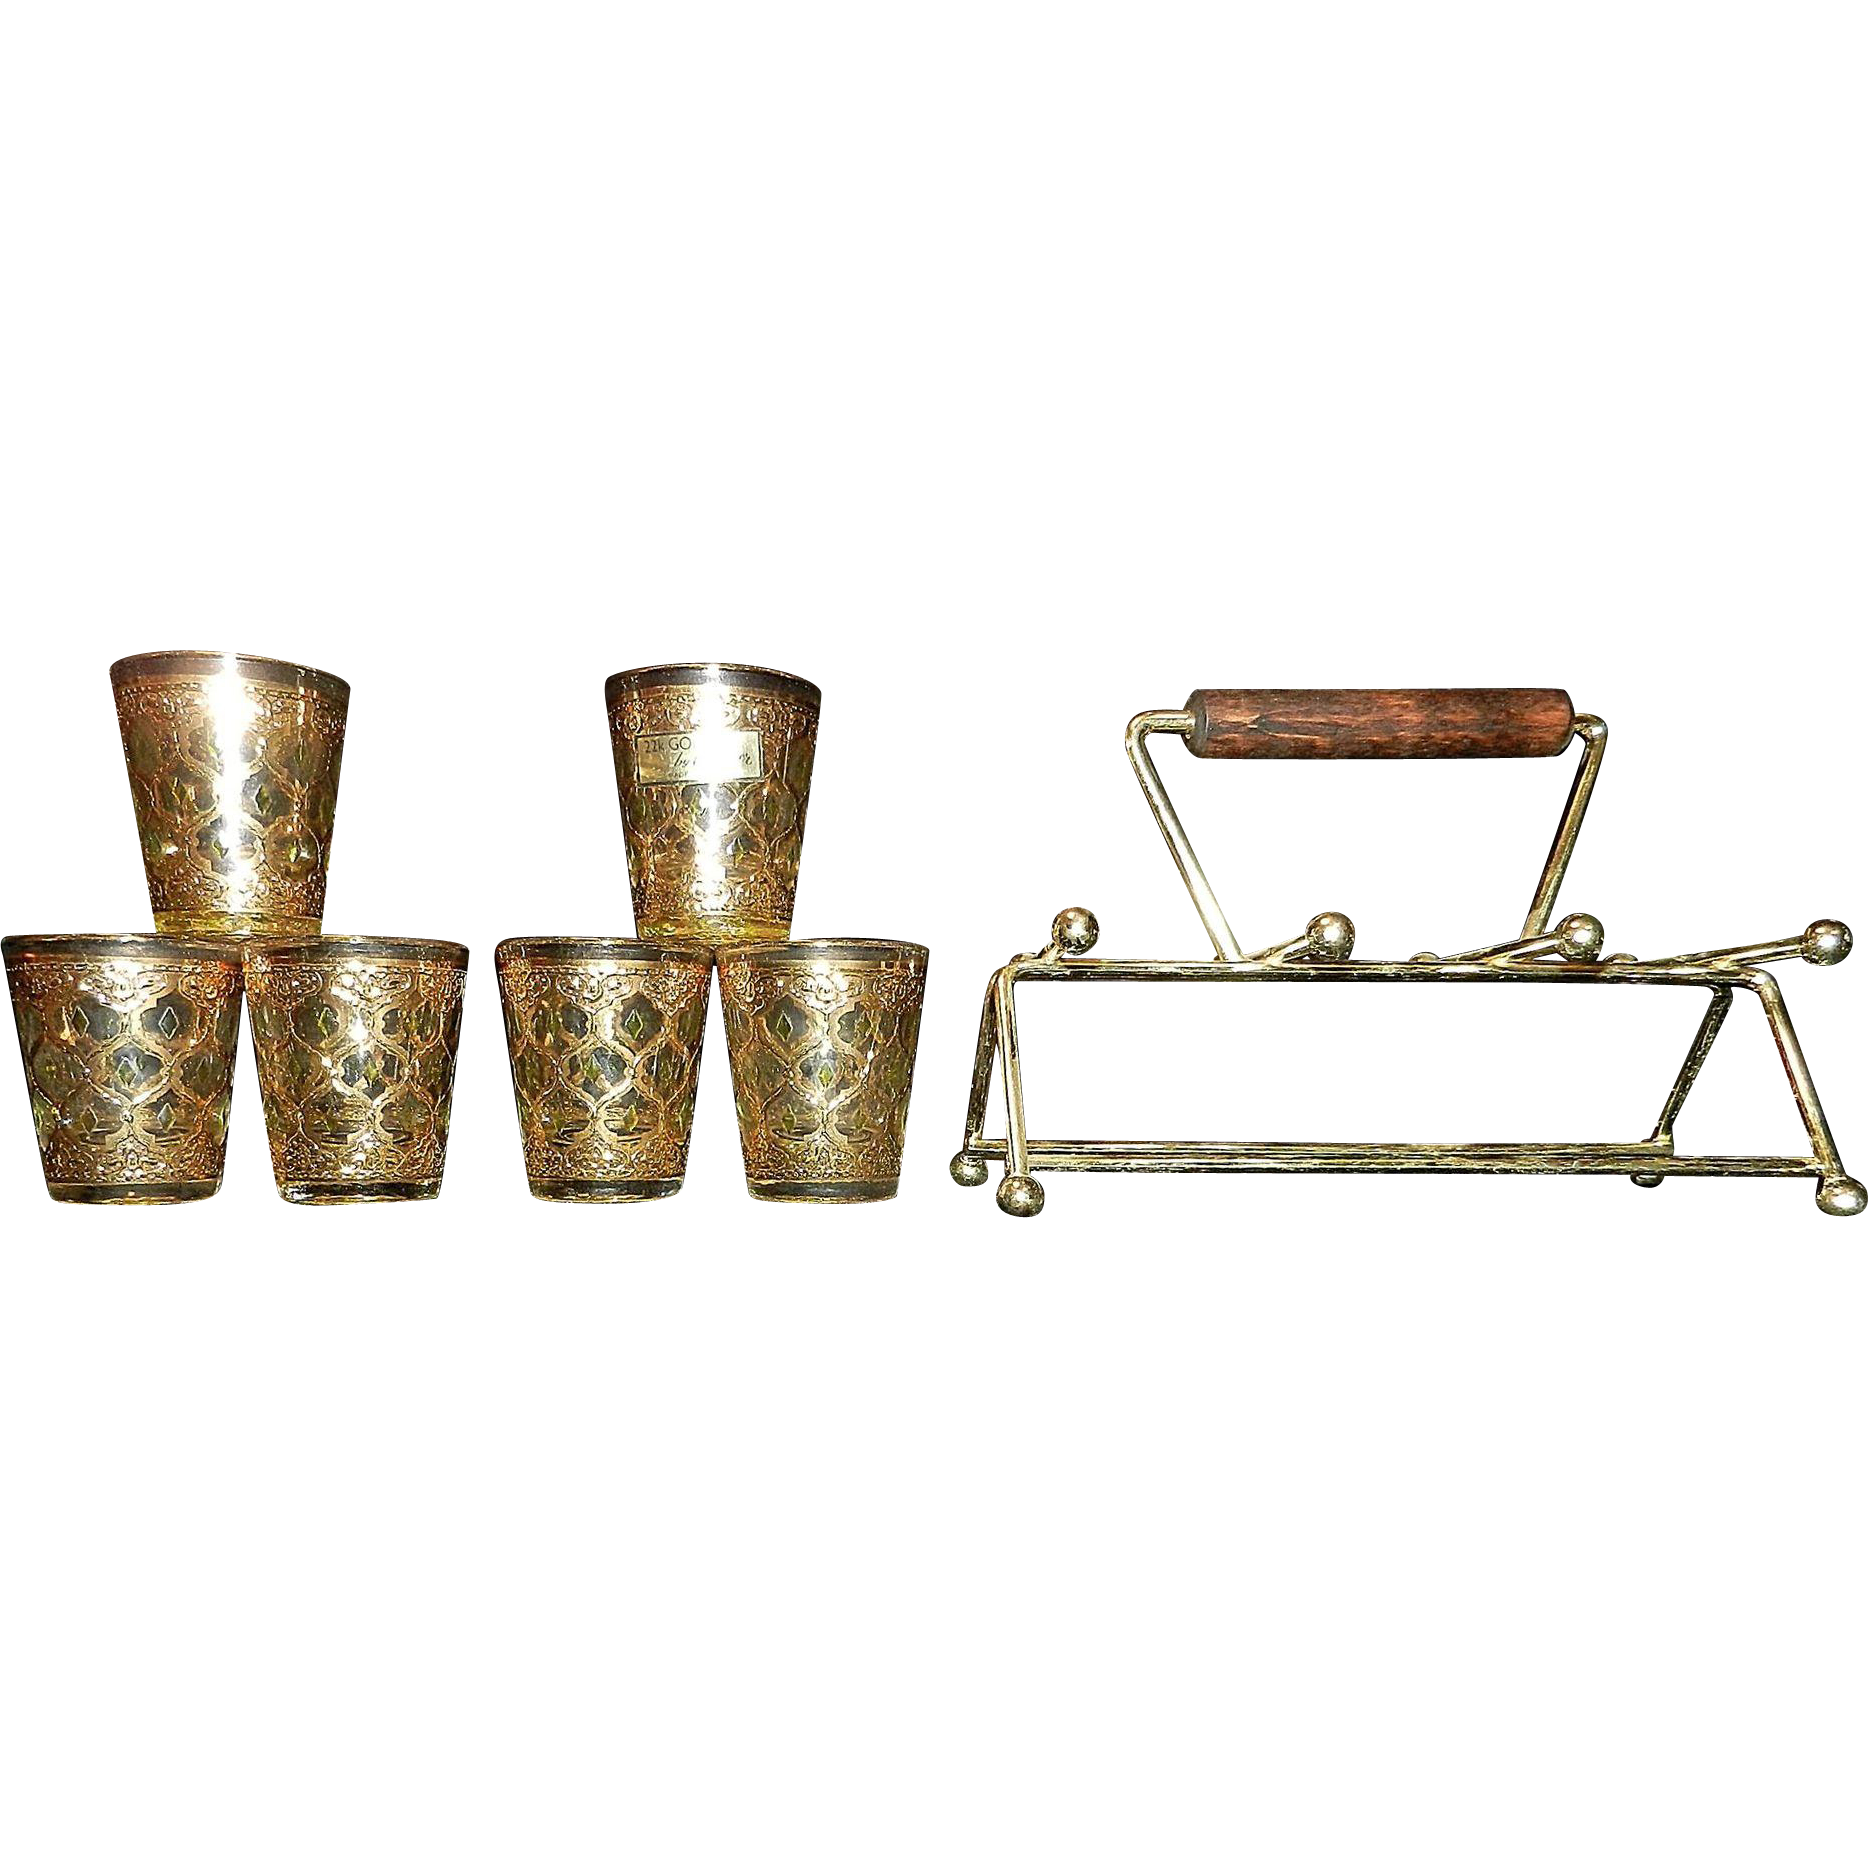 Vintage culver valencia shot glasses with caddy from - Vintage valencia ...